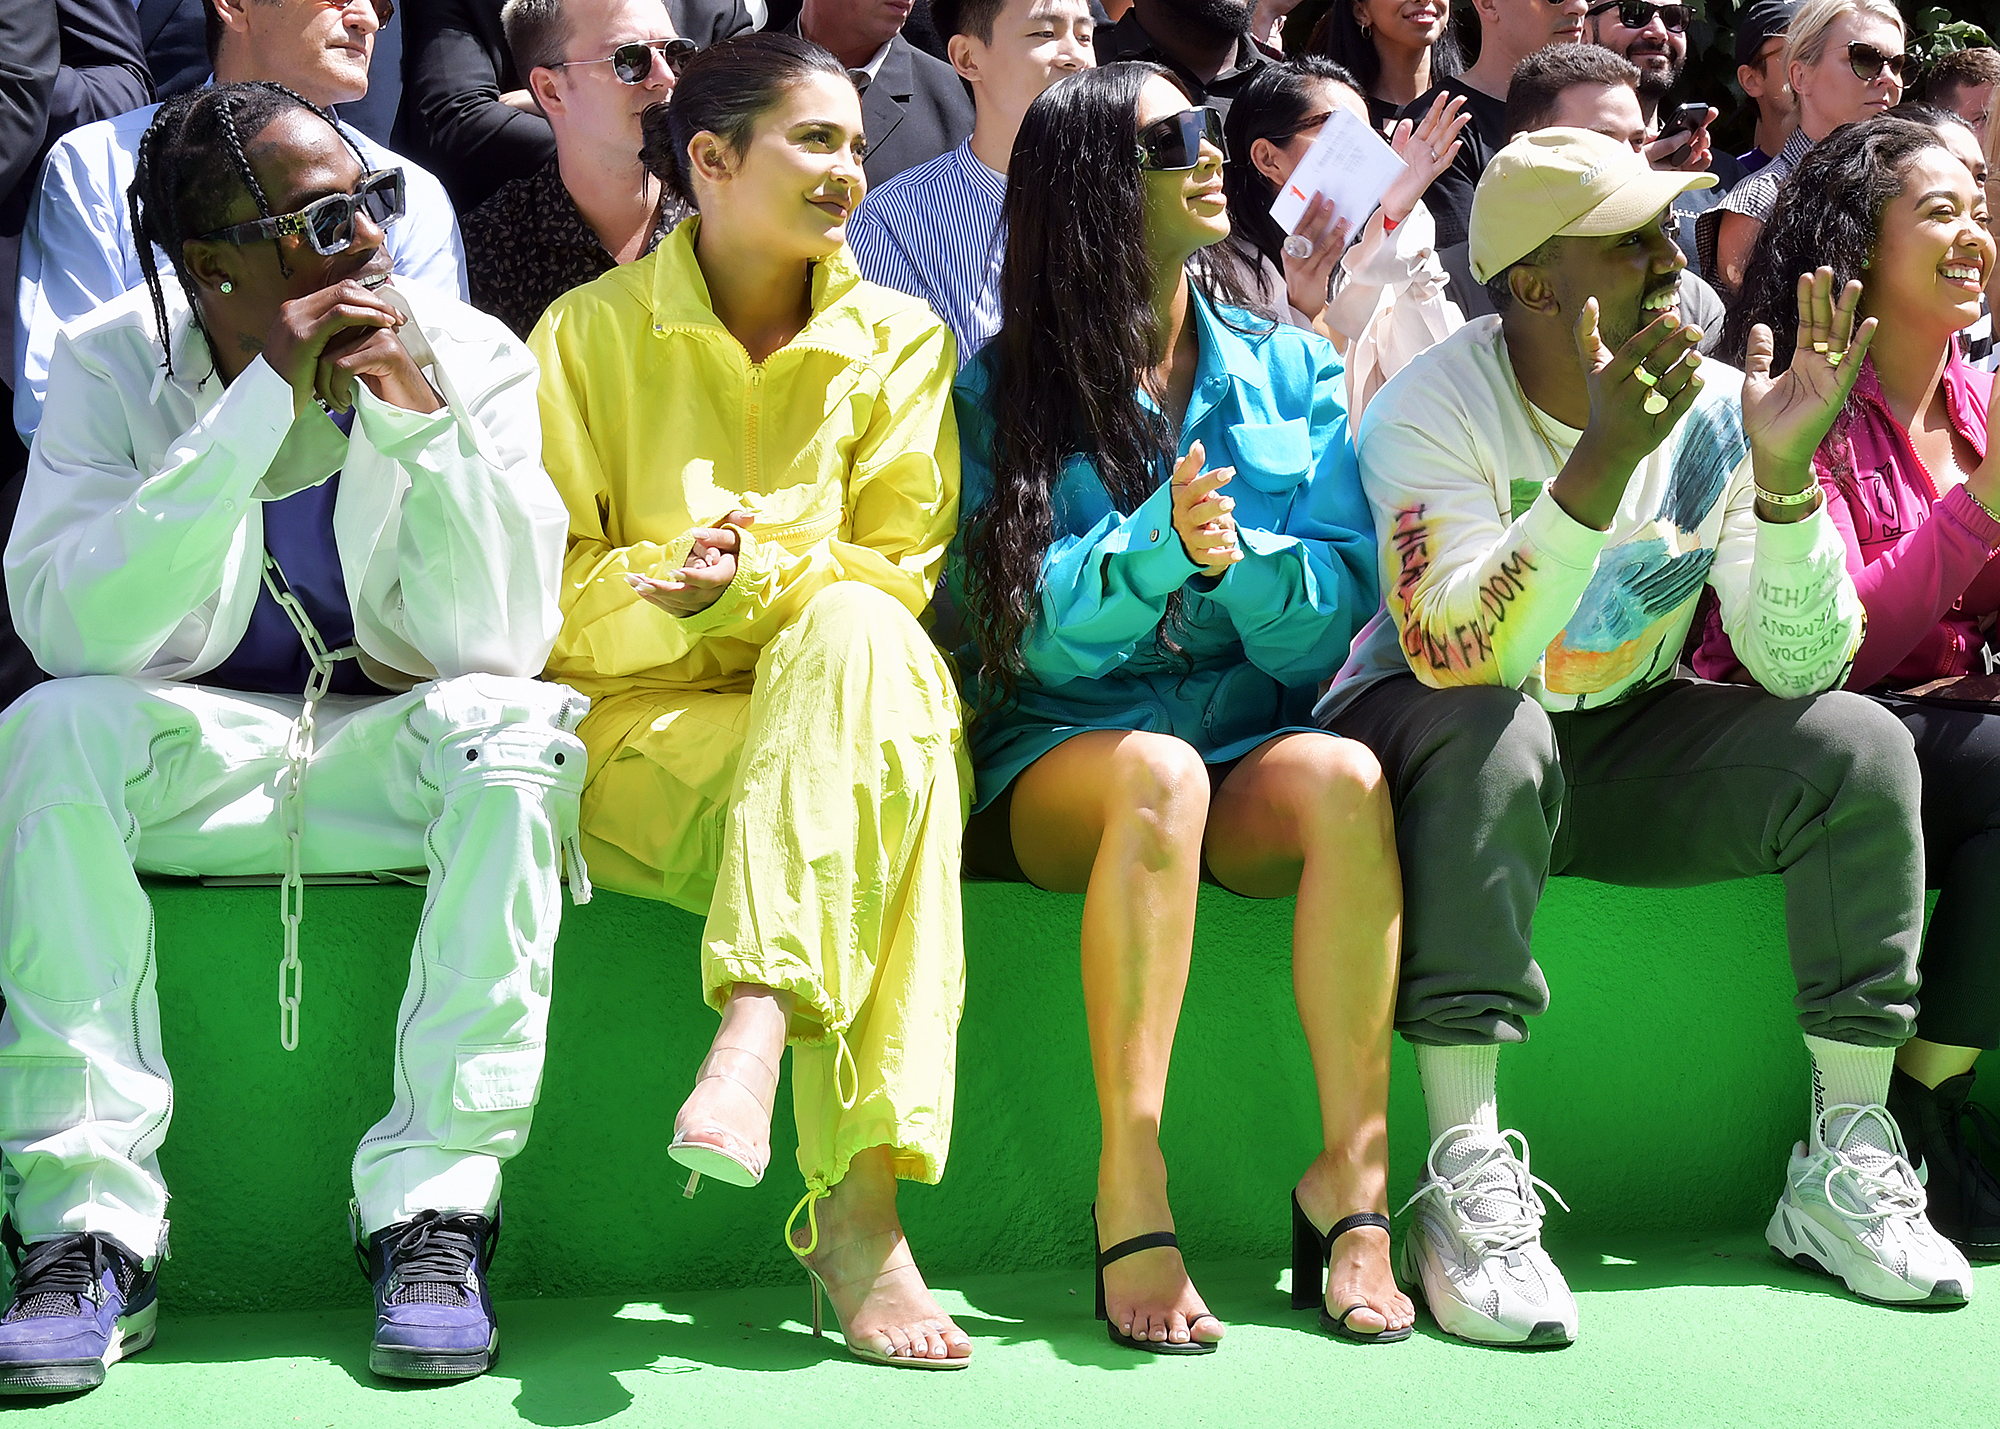 Travis Scott Kylie Jenner Kim Kardashian Kanye West - Travis Scott, Kylie Jenner, Kim Kardashian West and Kanye West in the front row at the Louis Vuitton show at Paris Fashion Week on June 21, 2018.